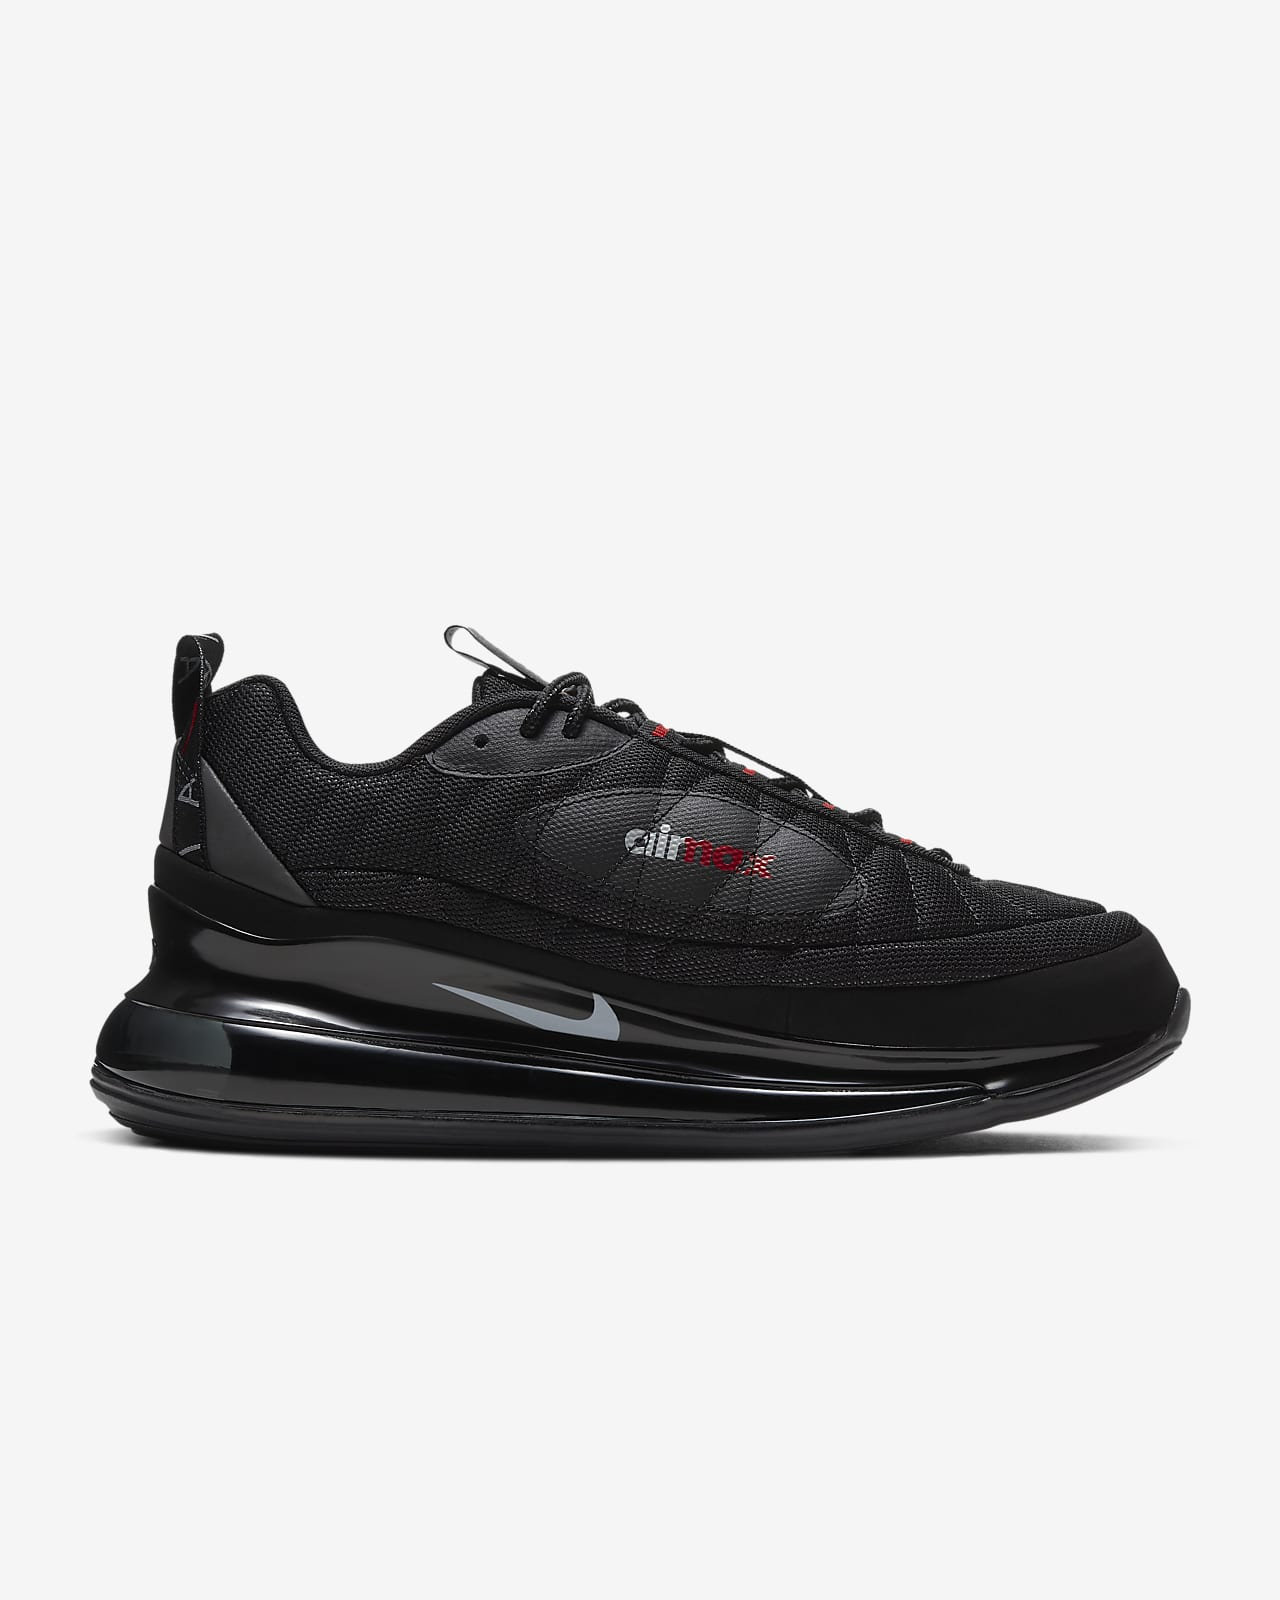 nike chaussure hommes 720